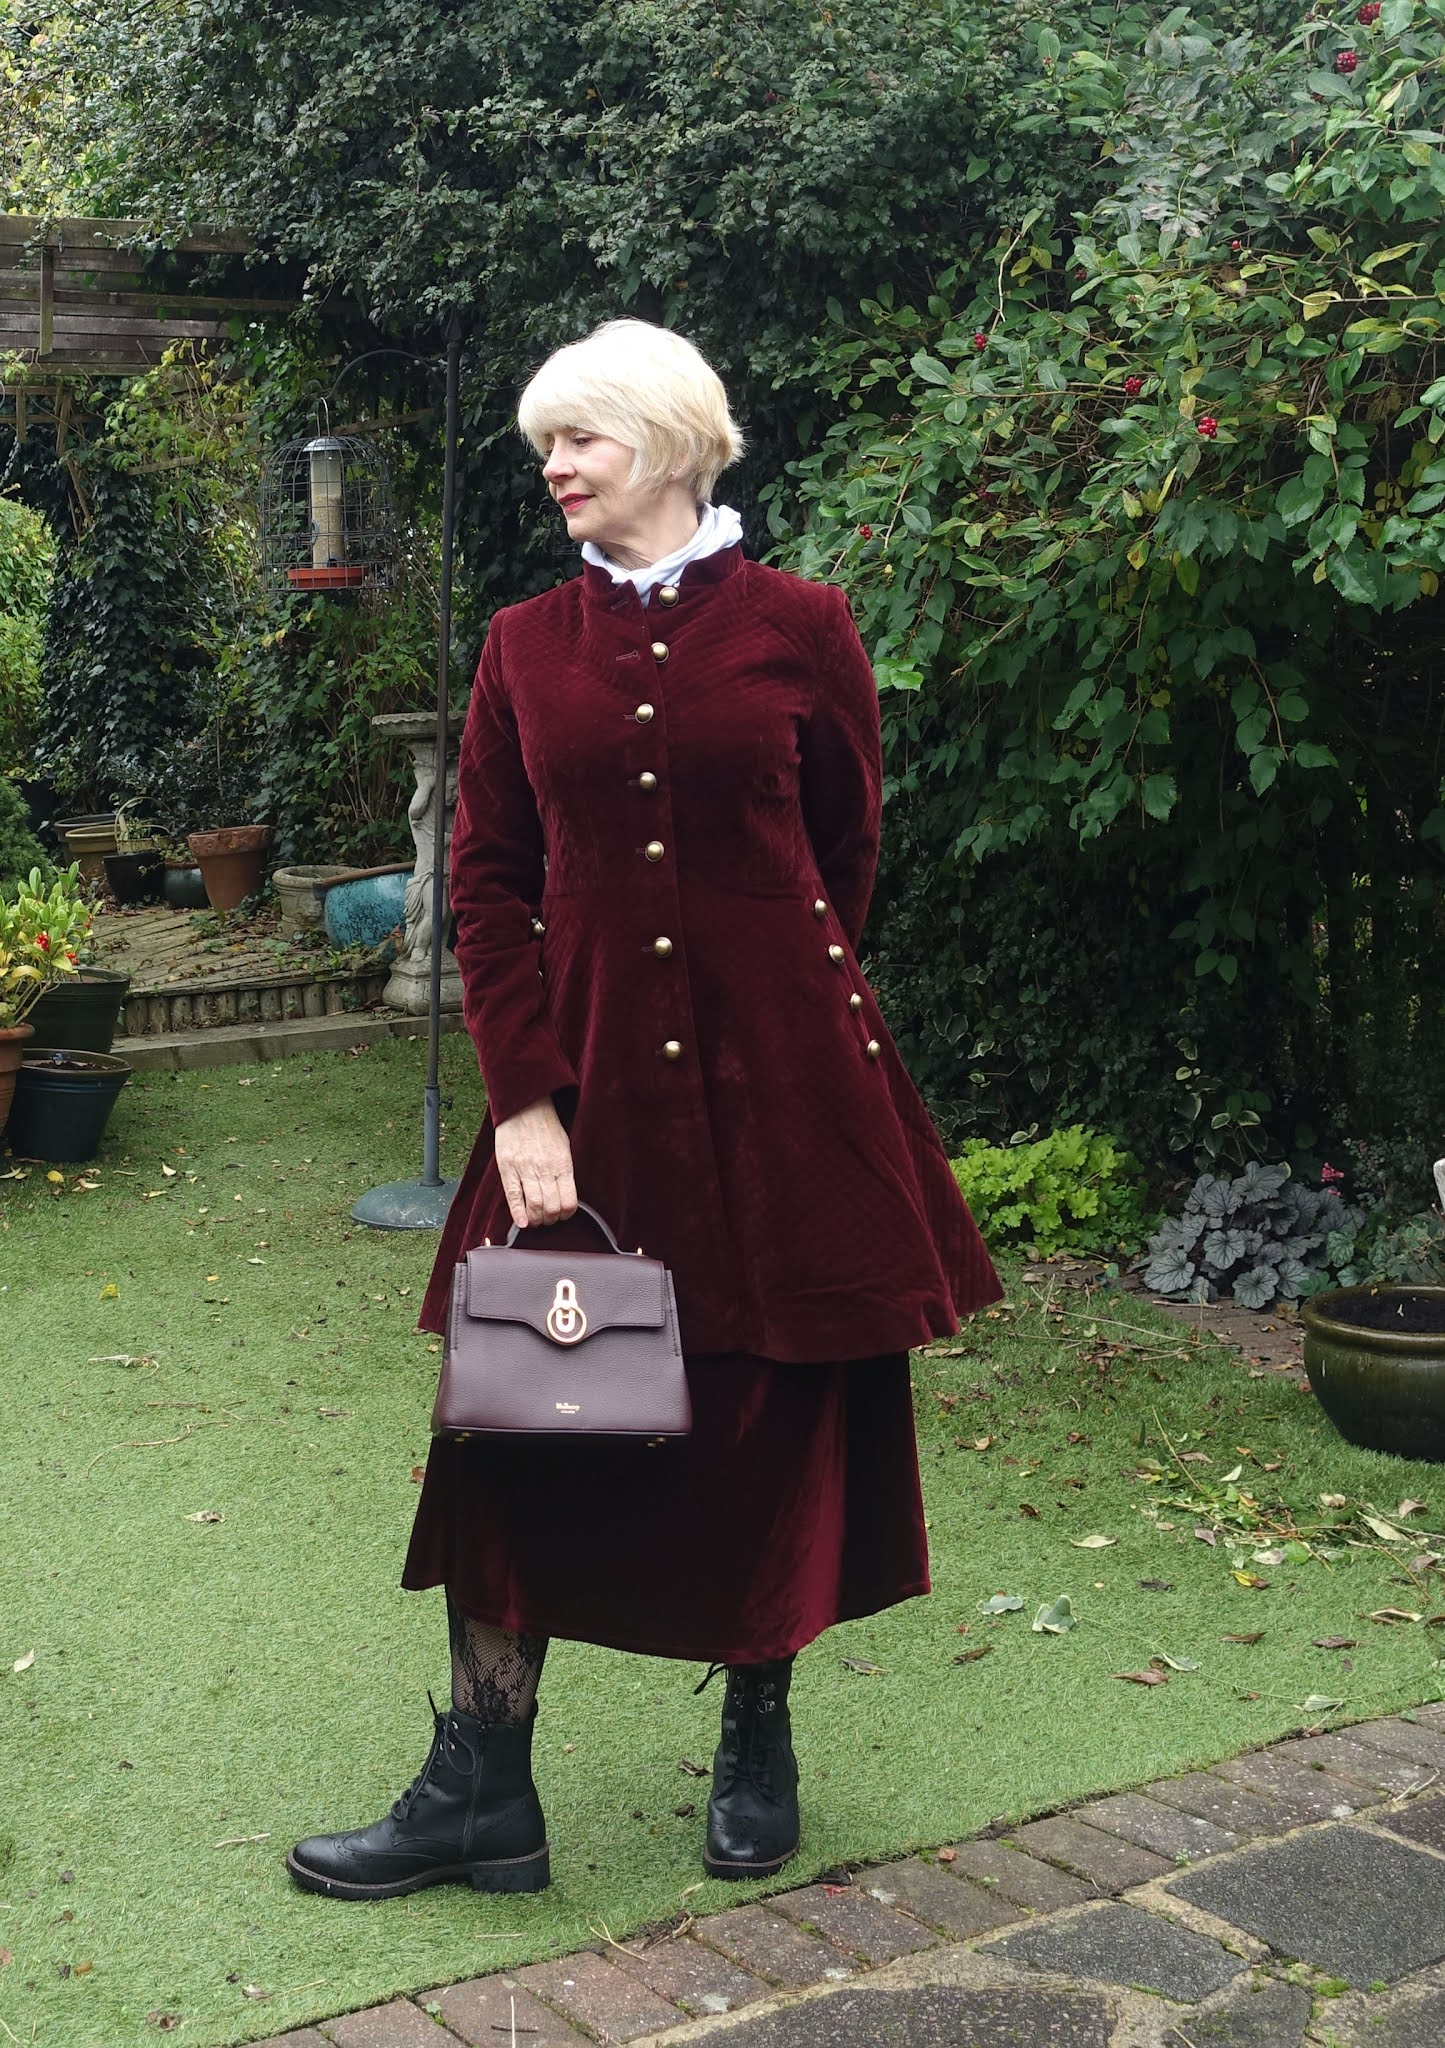 Gail Hanlon from style blog Is This Mutton in burgundy velvet coat from Joe Browns